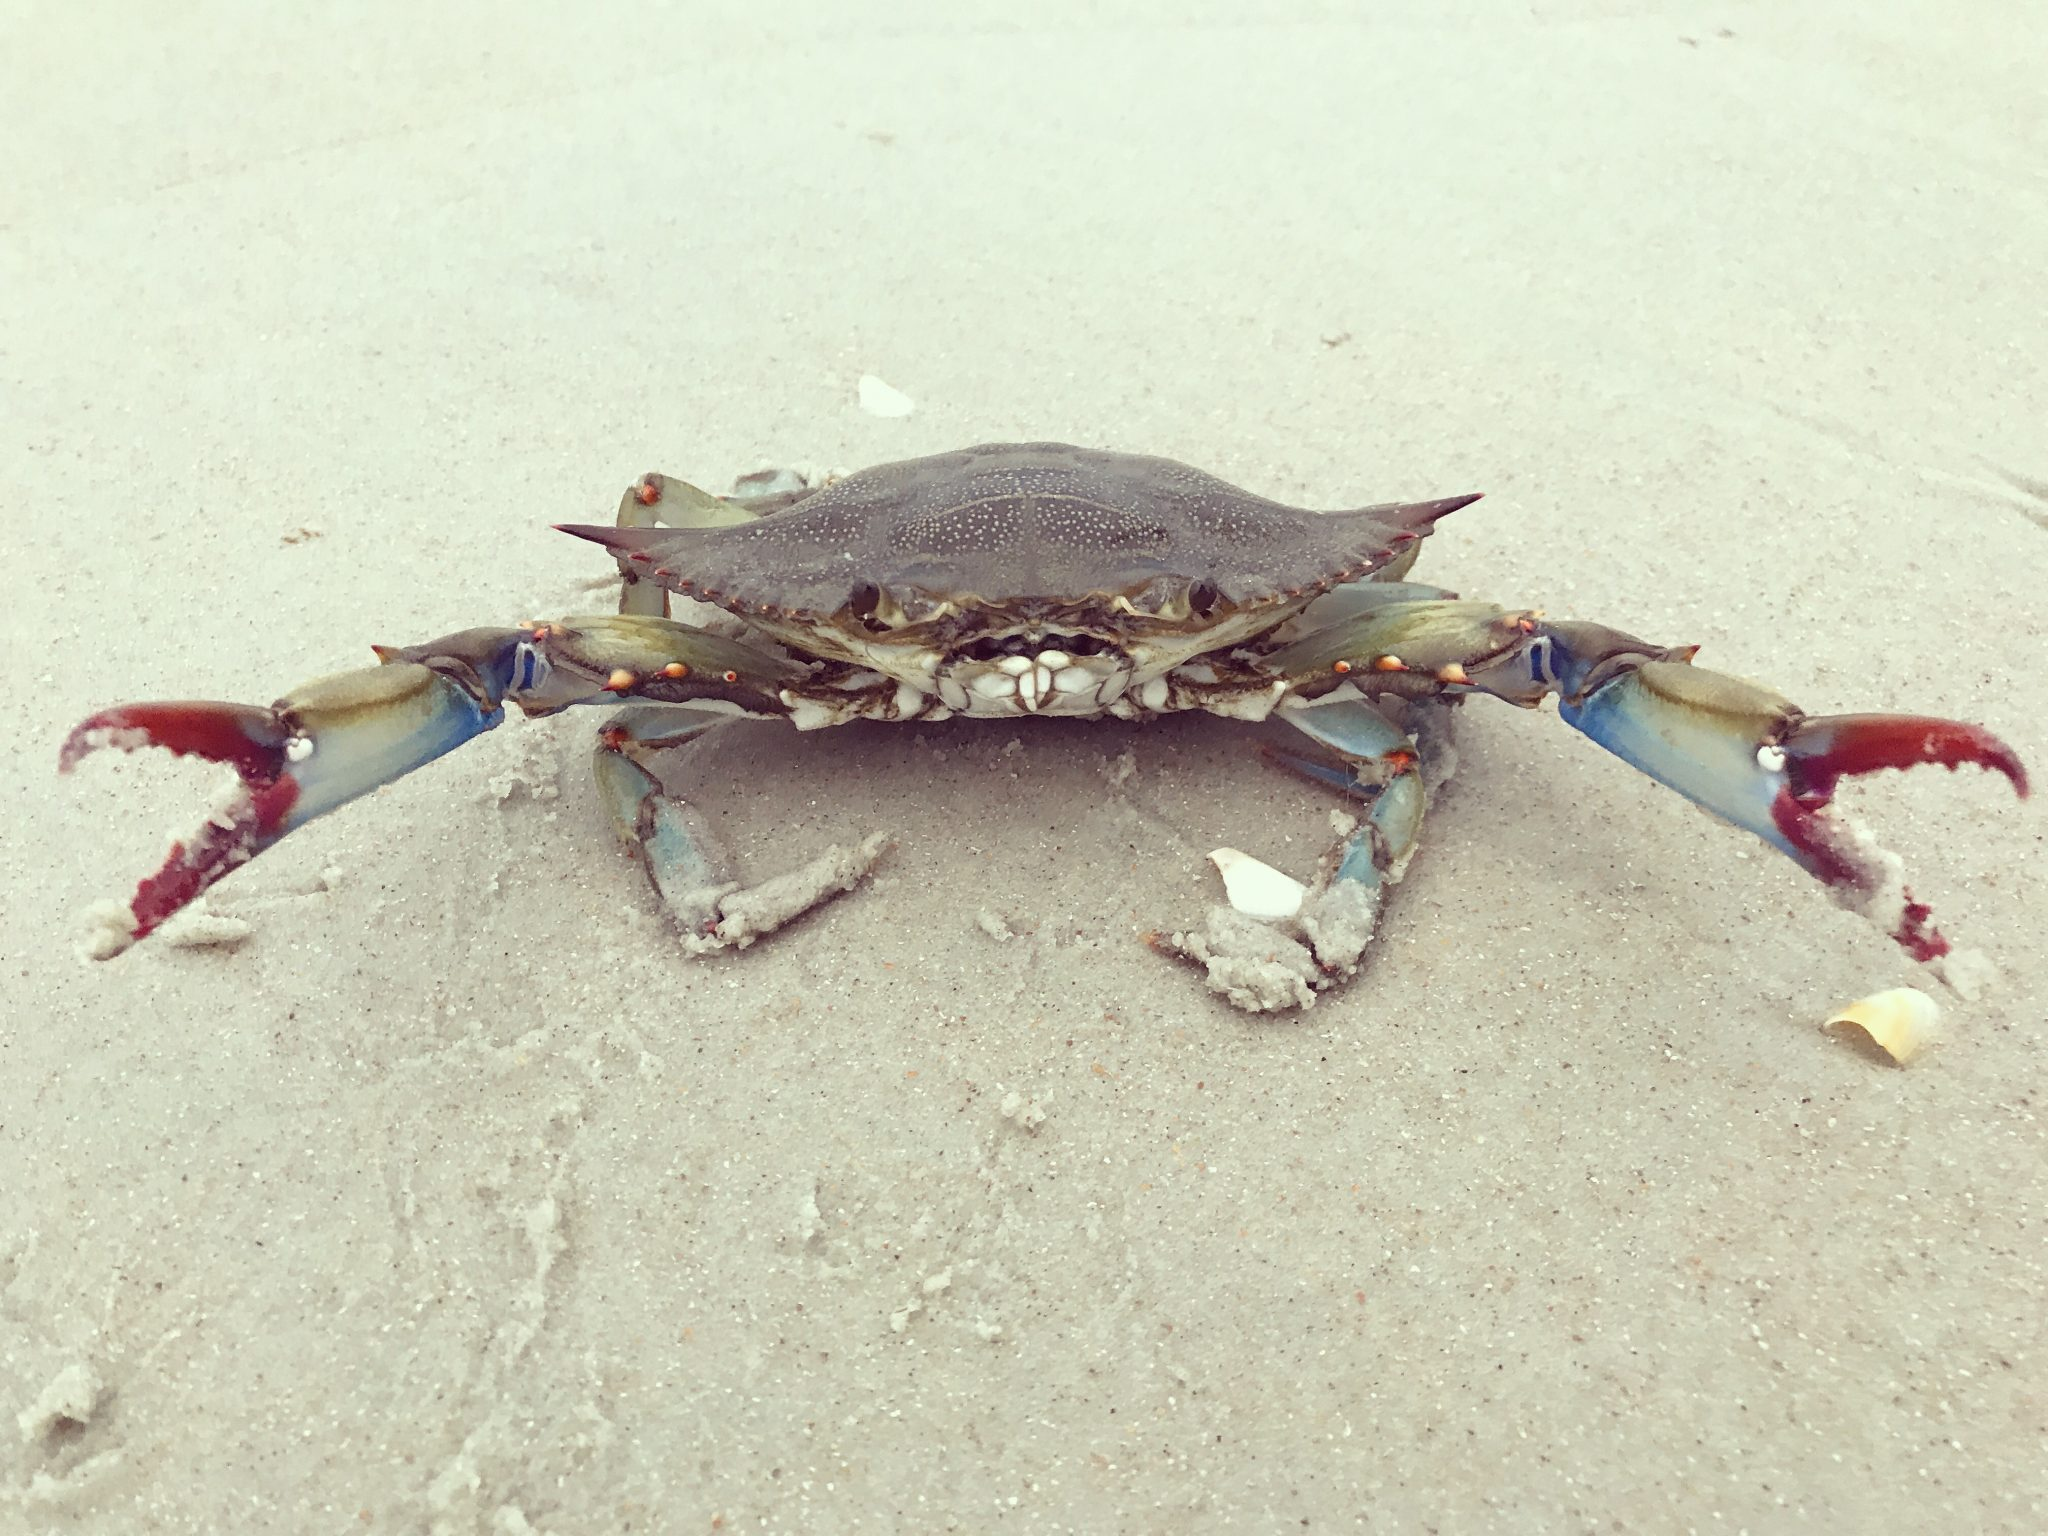 Blue crab with his claws raised in warning.